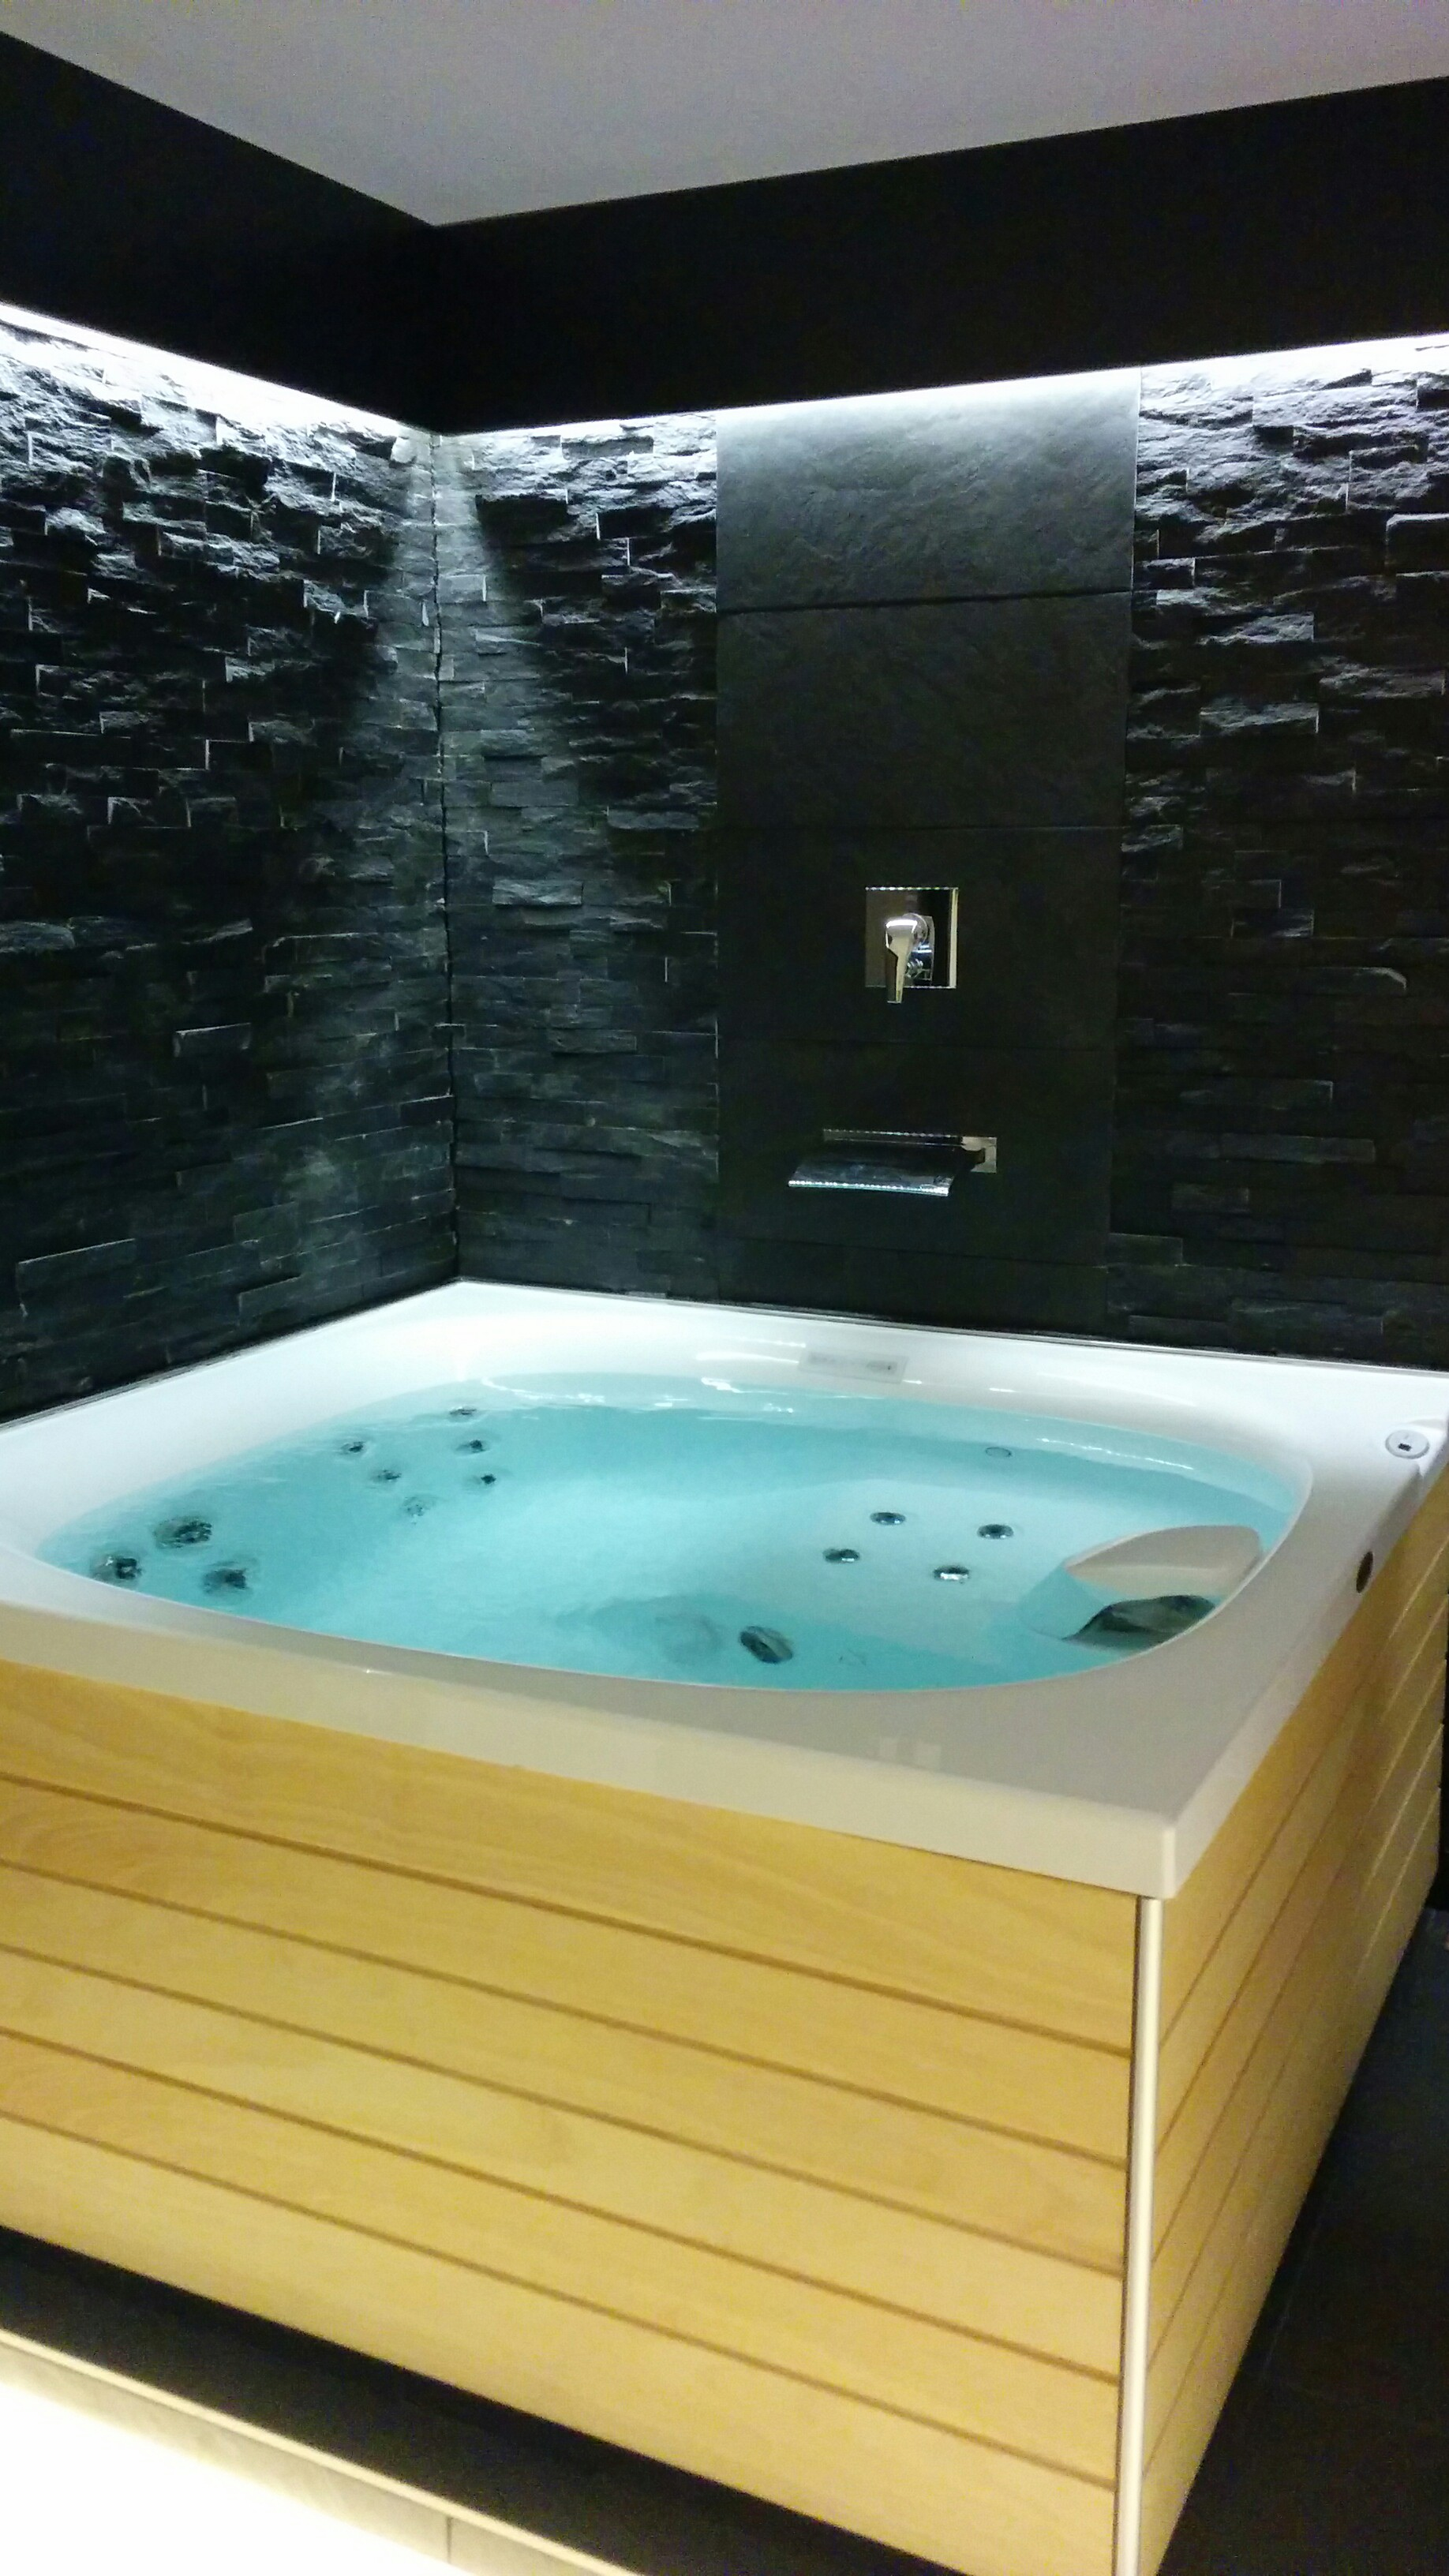 Outdoor-Whirlpool plus Designerfliesen: jacuzzi-wellness.at